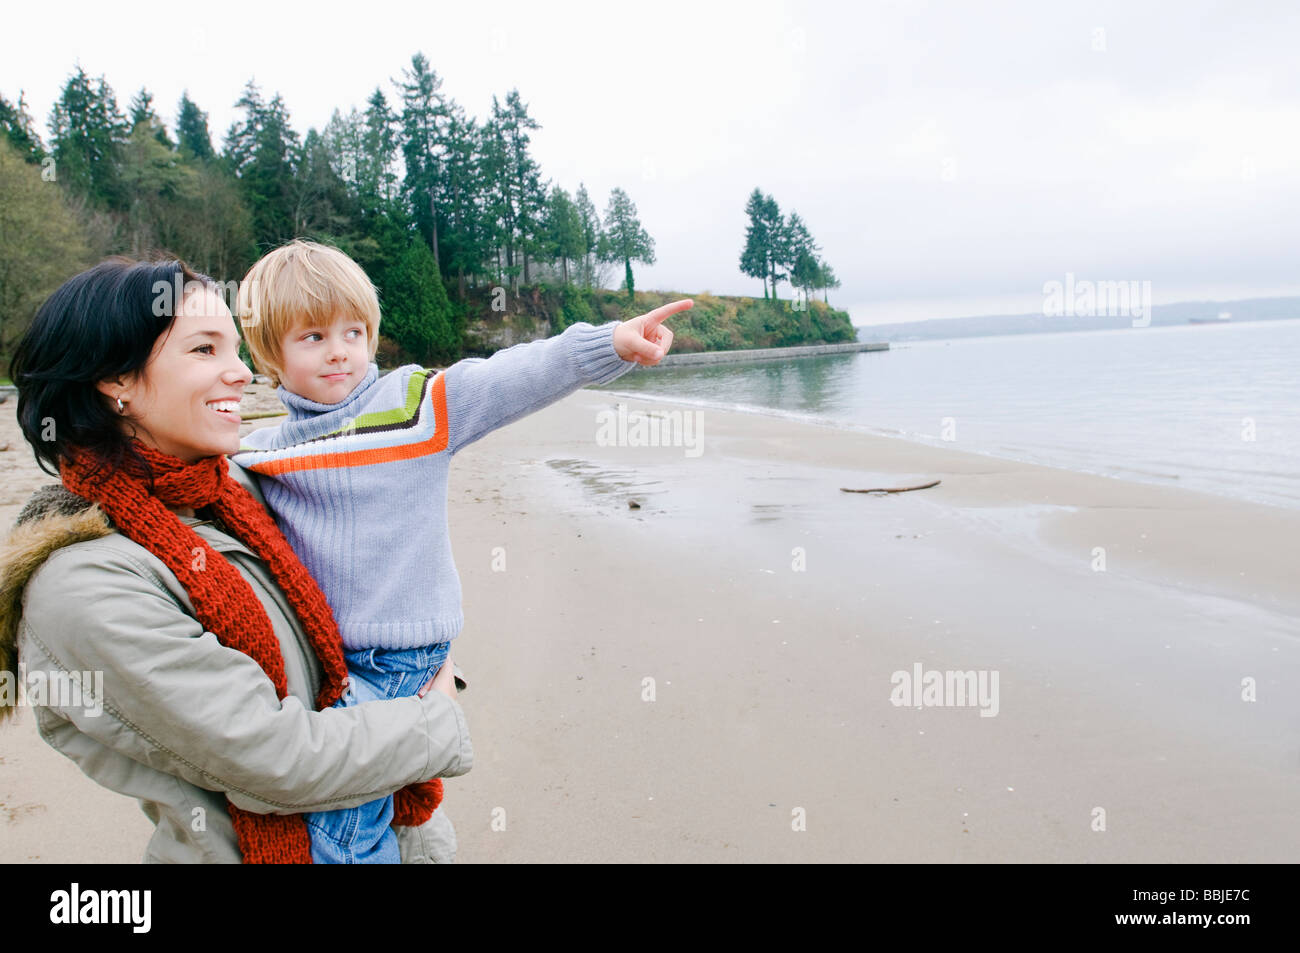 Boy with mother points out across water, Vancouver, British Columbia - Stock Image